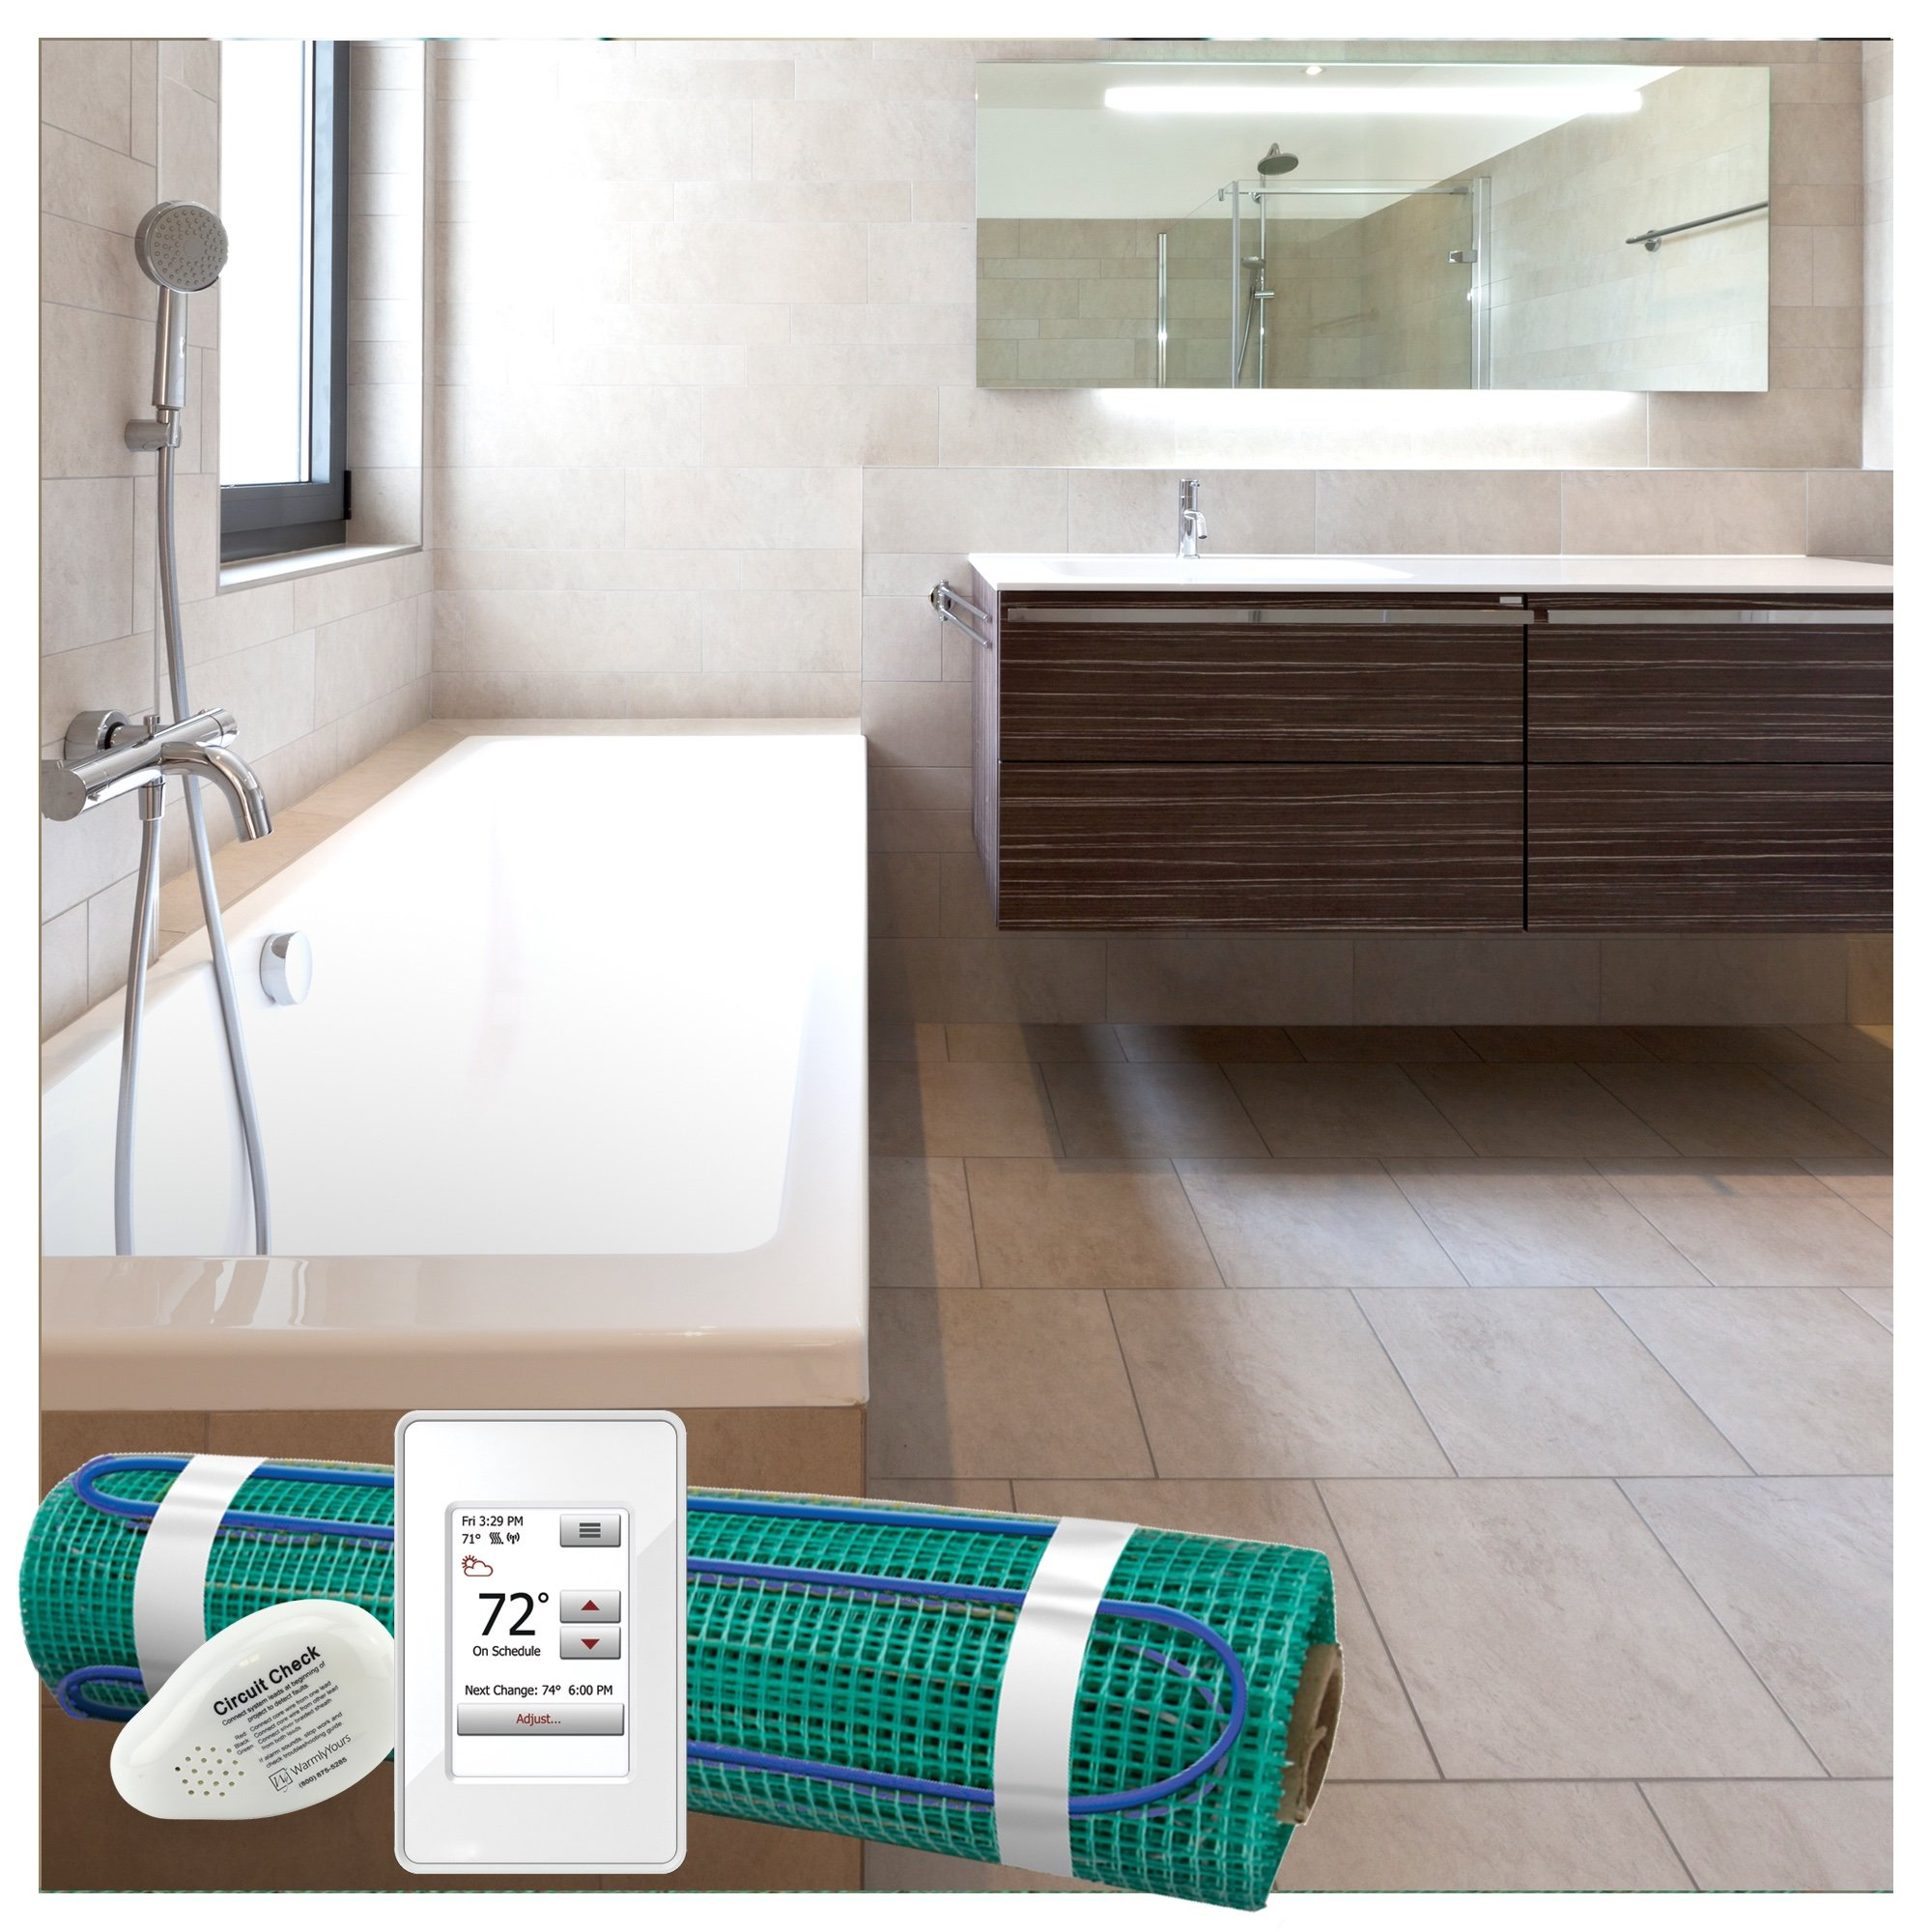 Bathroom with TempZone floor heating and Ember radiant panel.